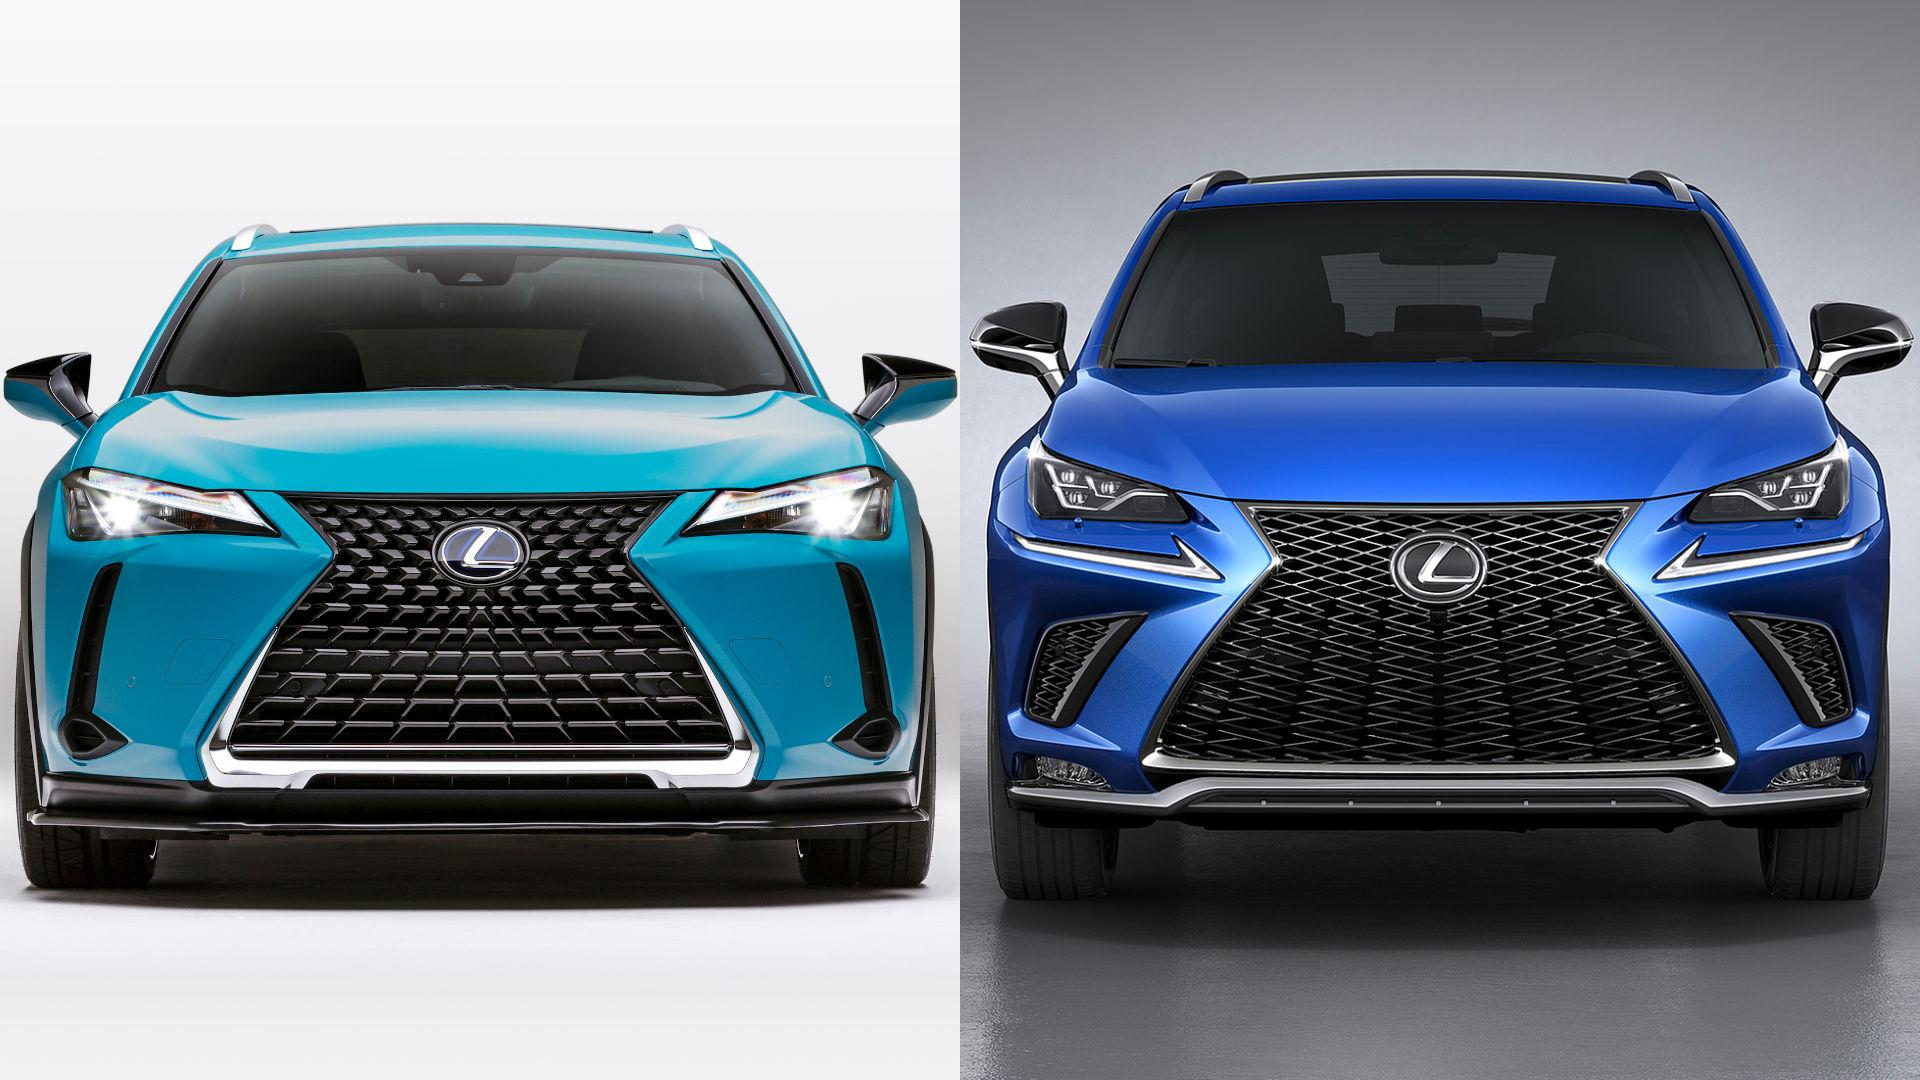 Lexus UX vs NX - What's the difference?